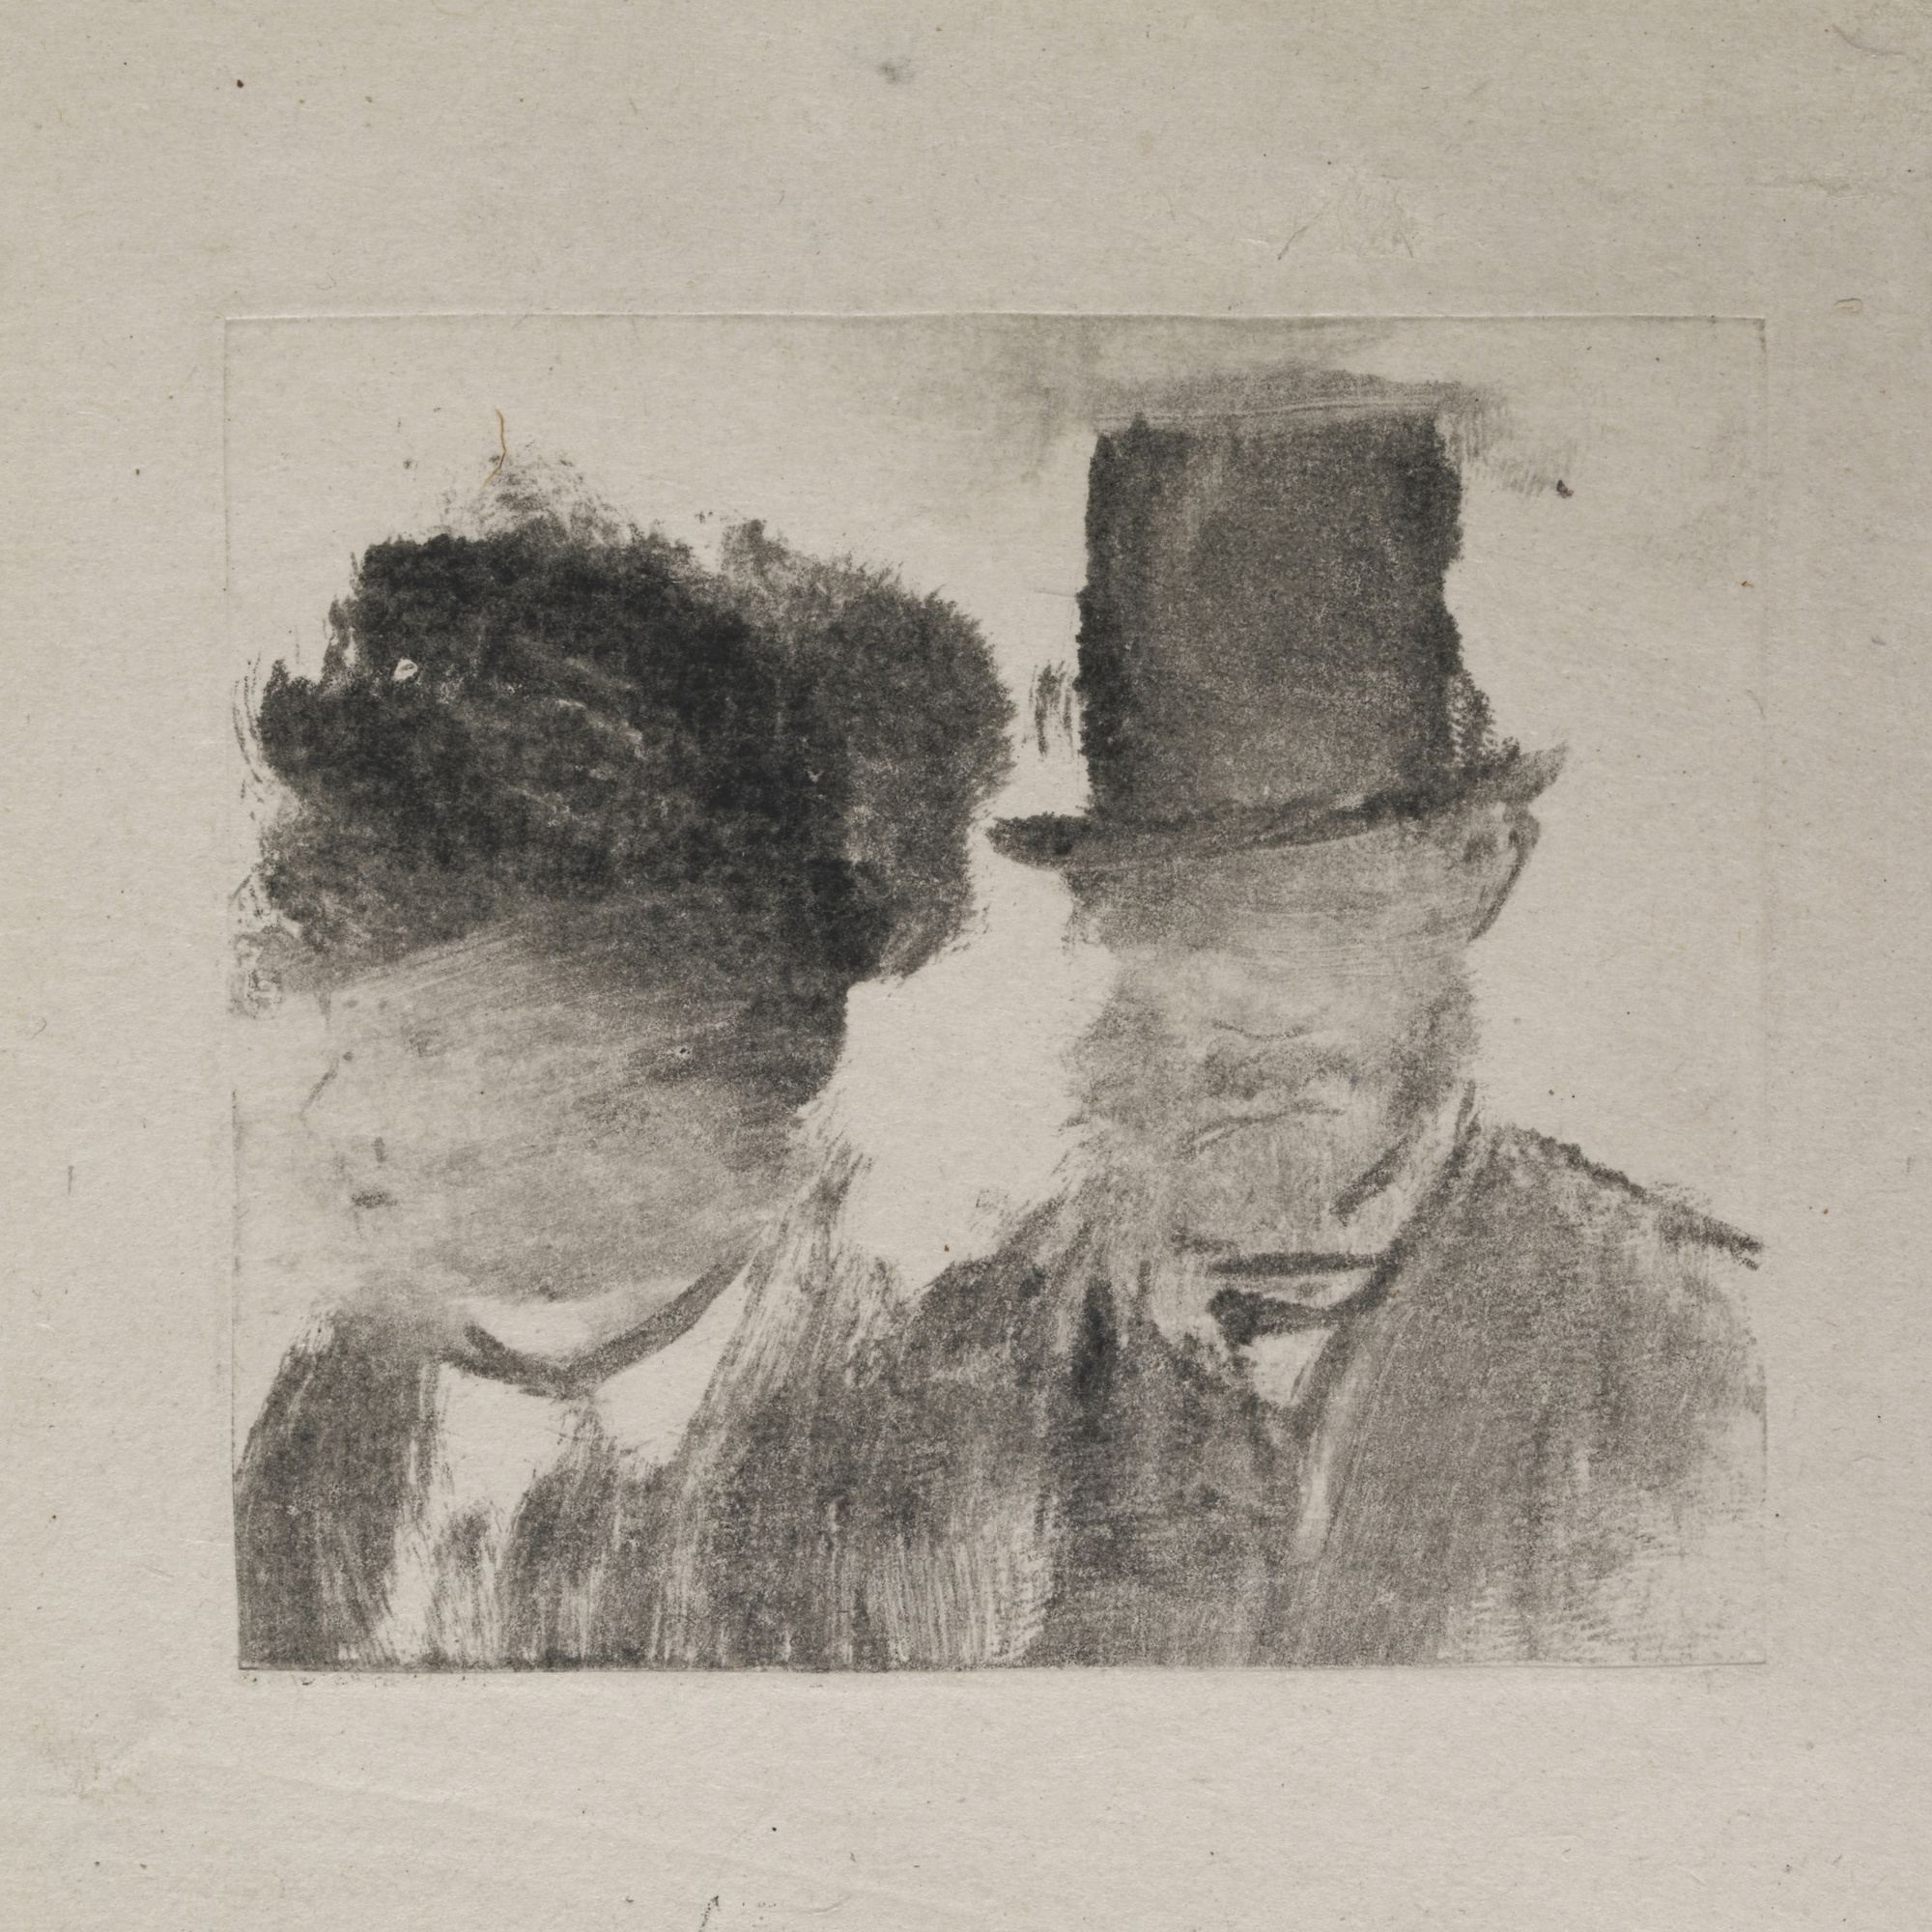 Edgar Degas. Heads of a Man and a Woman (Homme et femme, en buste). c. 1877–80. Monotype on paper, plate: 2 13/16 × 3 3/16″ (7.2 × 8.1 cm). British Museum, London. Bequeathed by Campbell Dodgson